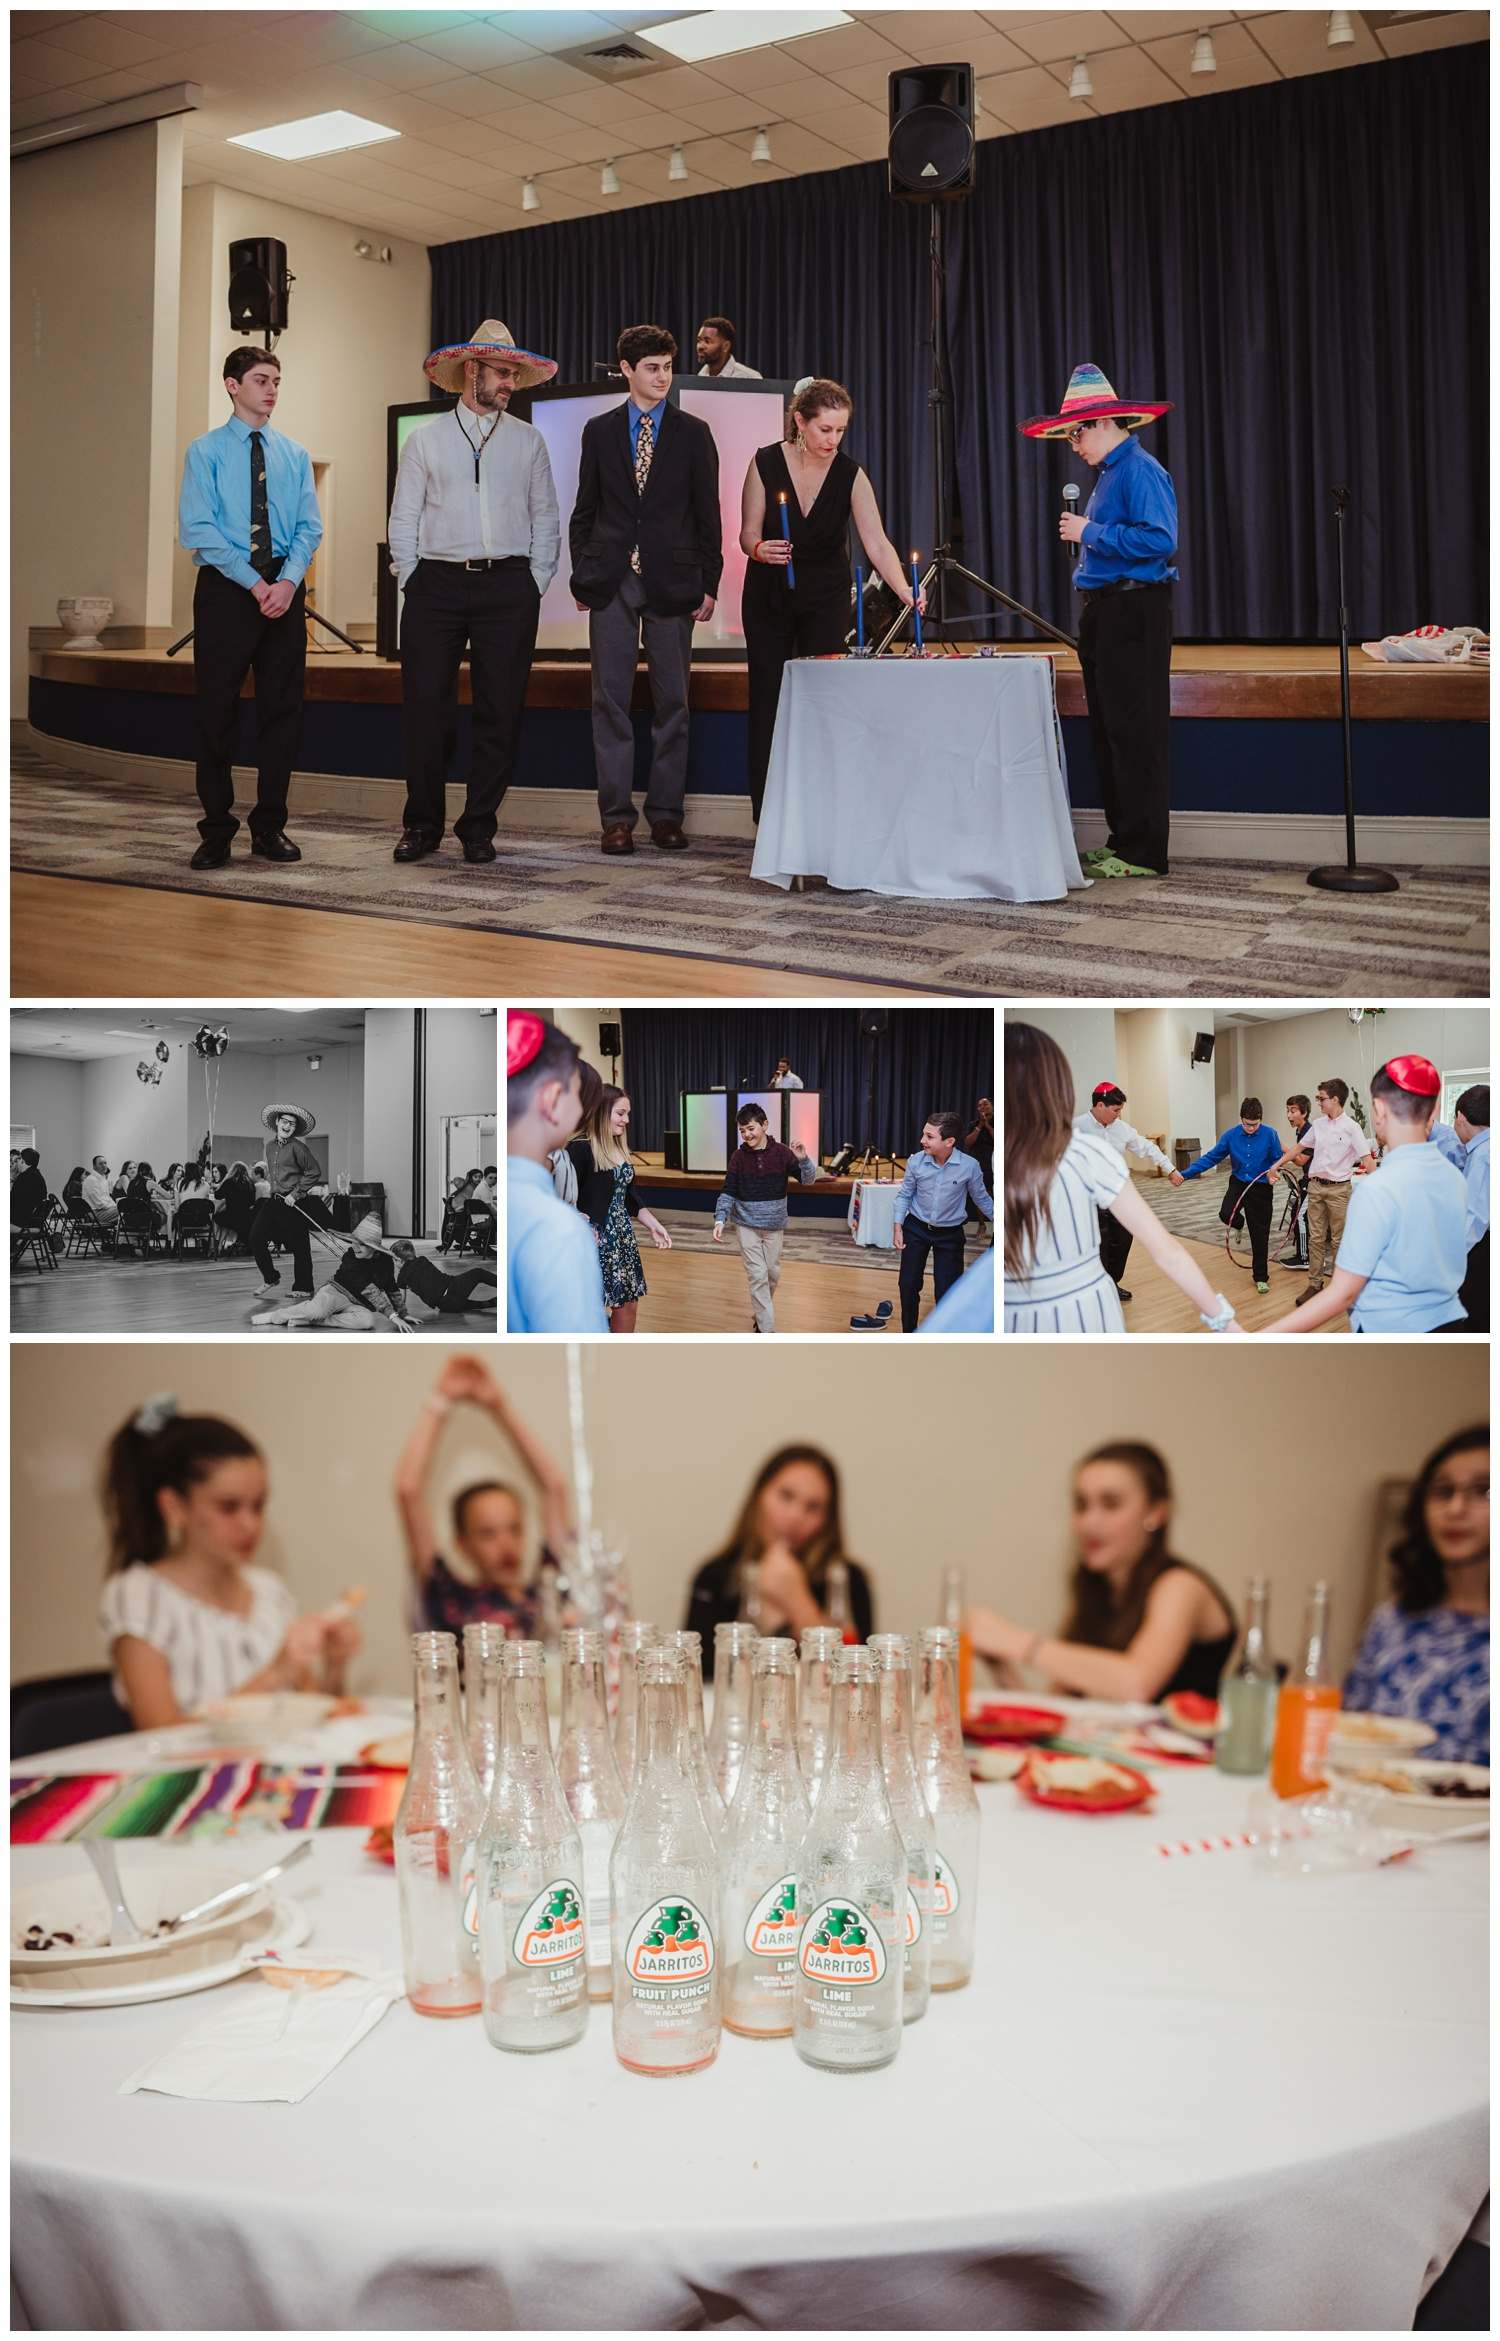 Some of the Mexican themed mitzvah celebration at Temple Beth Or in Raleigh, NC included a candle ceremony, hula hoops, and lots of jarritos soda, pictures by Rose Trail Images.